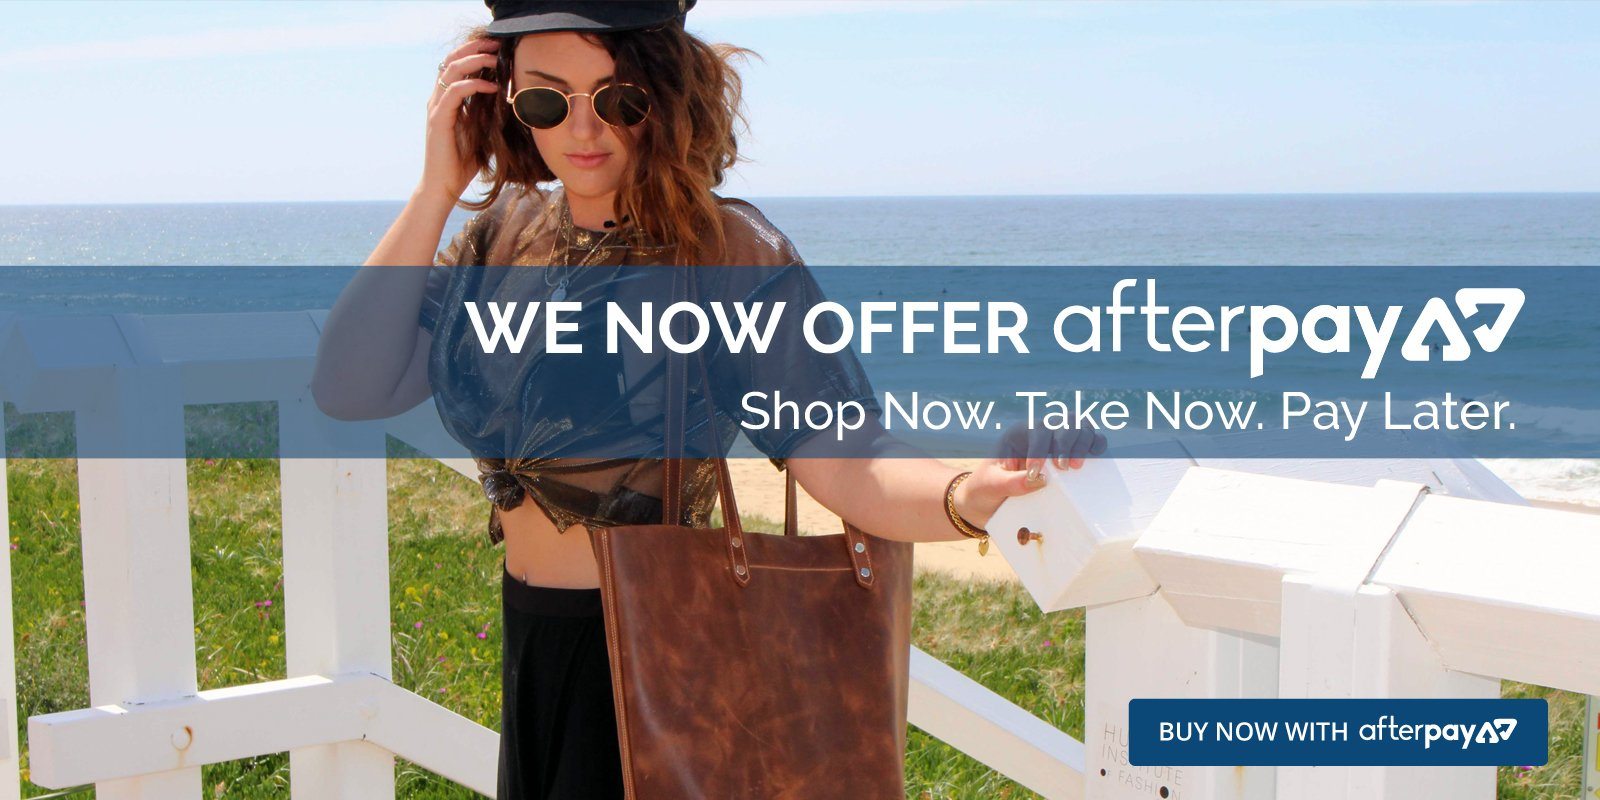 Aussie Bush Leather - Now Offer Afterpay - Online Shopping